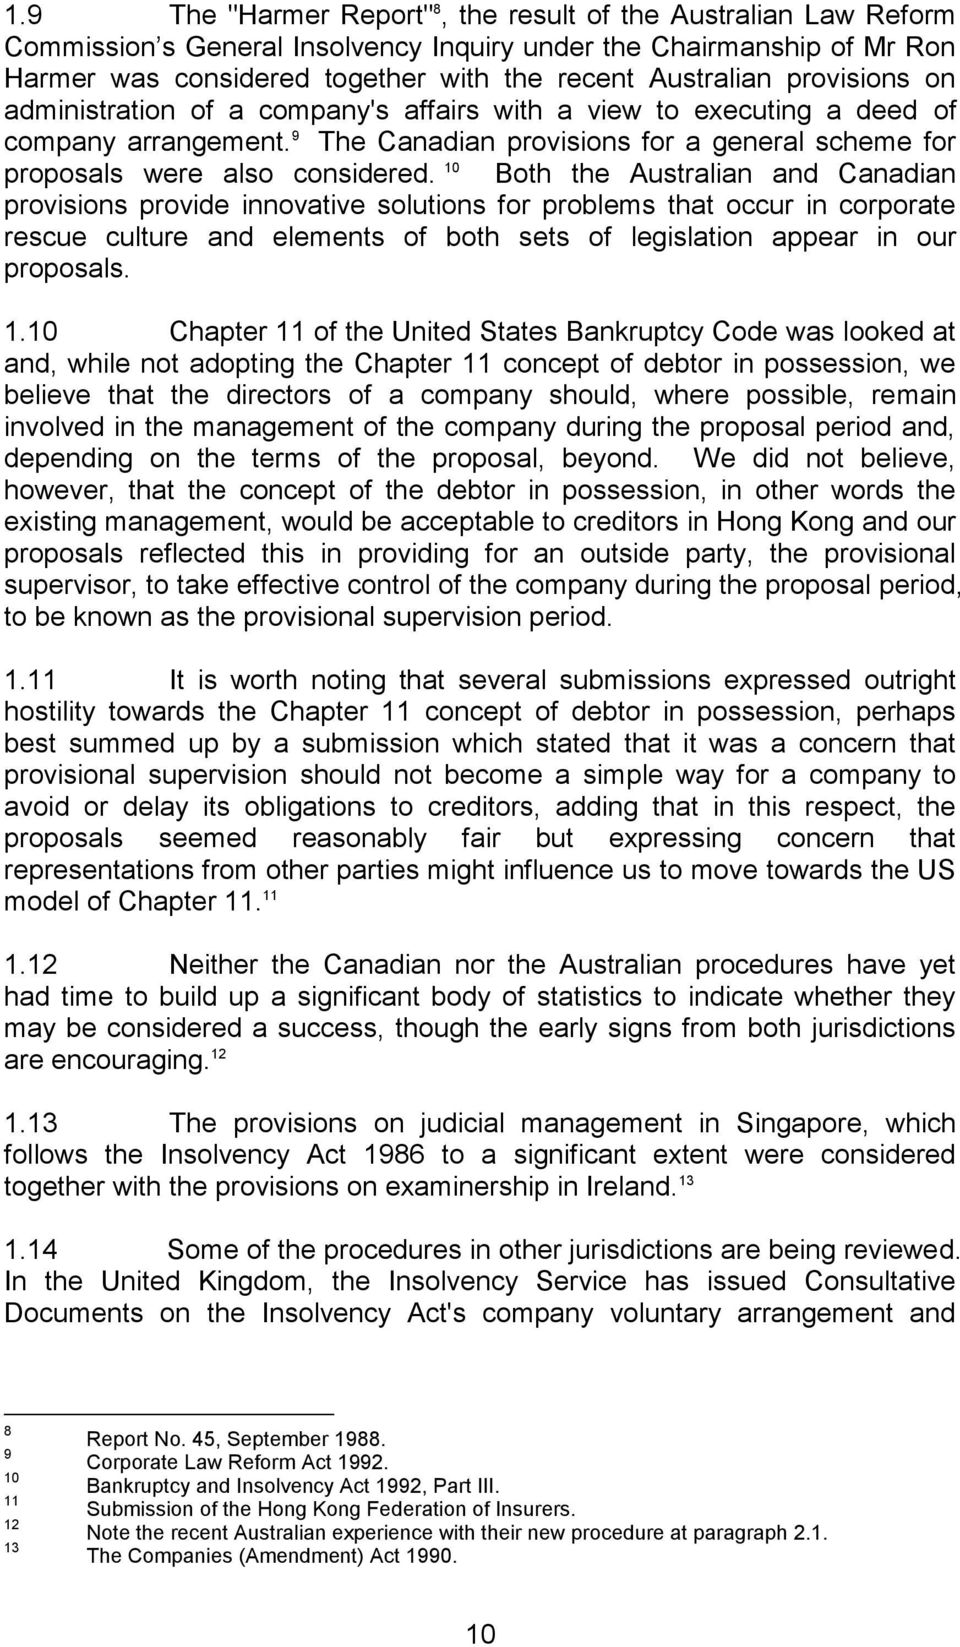 10 Both the Australian and Canadian provisions provide innovative solutions for problems that occur in corporate rescue culture and elements of both sets of legislation appear in our proposals. 1.